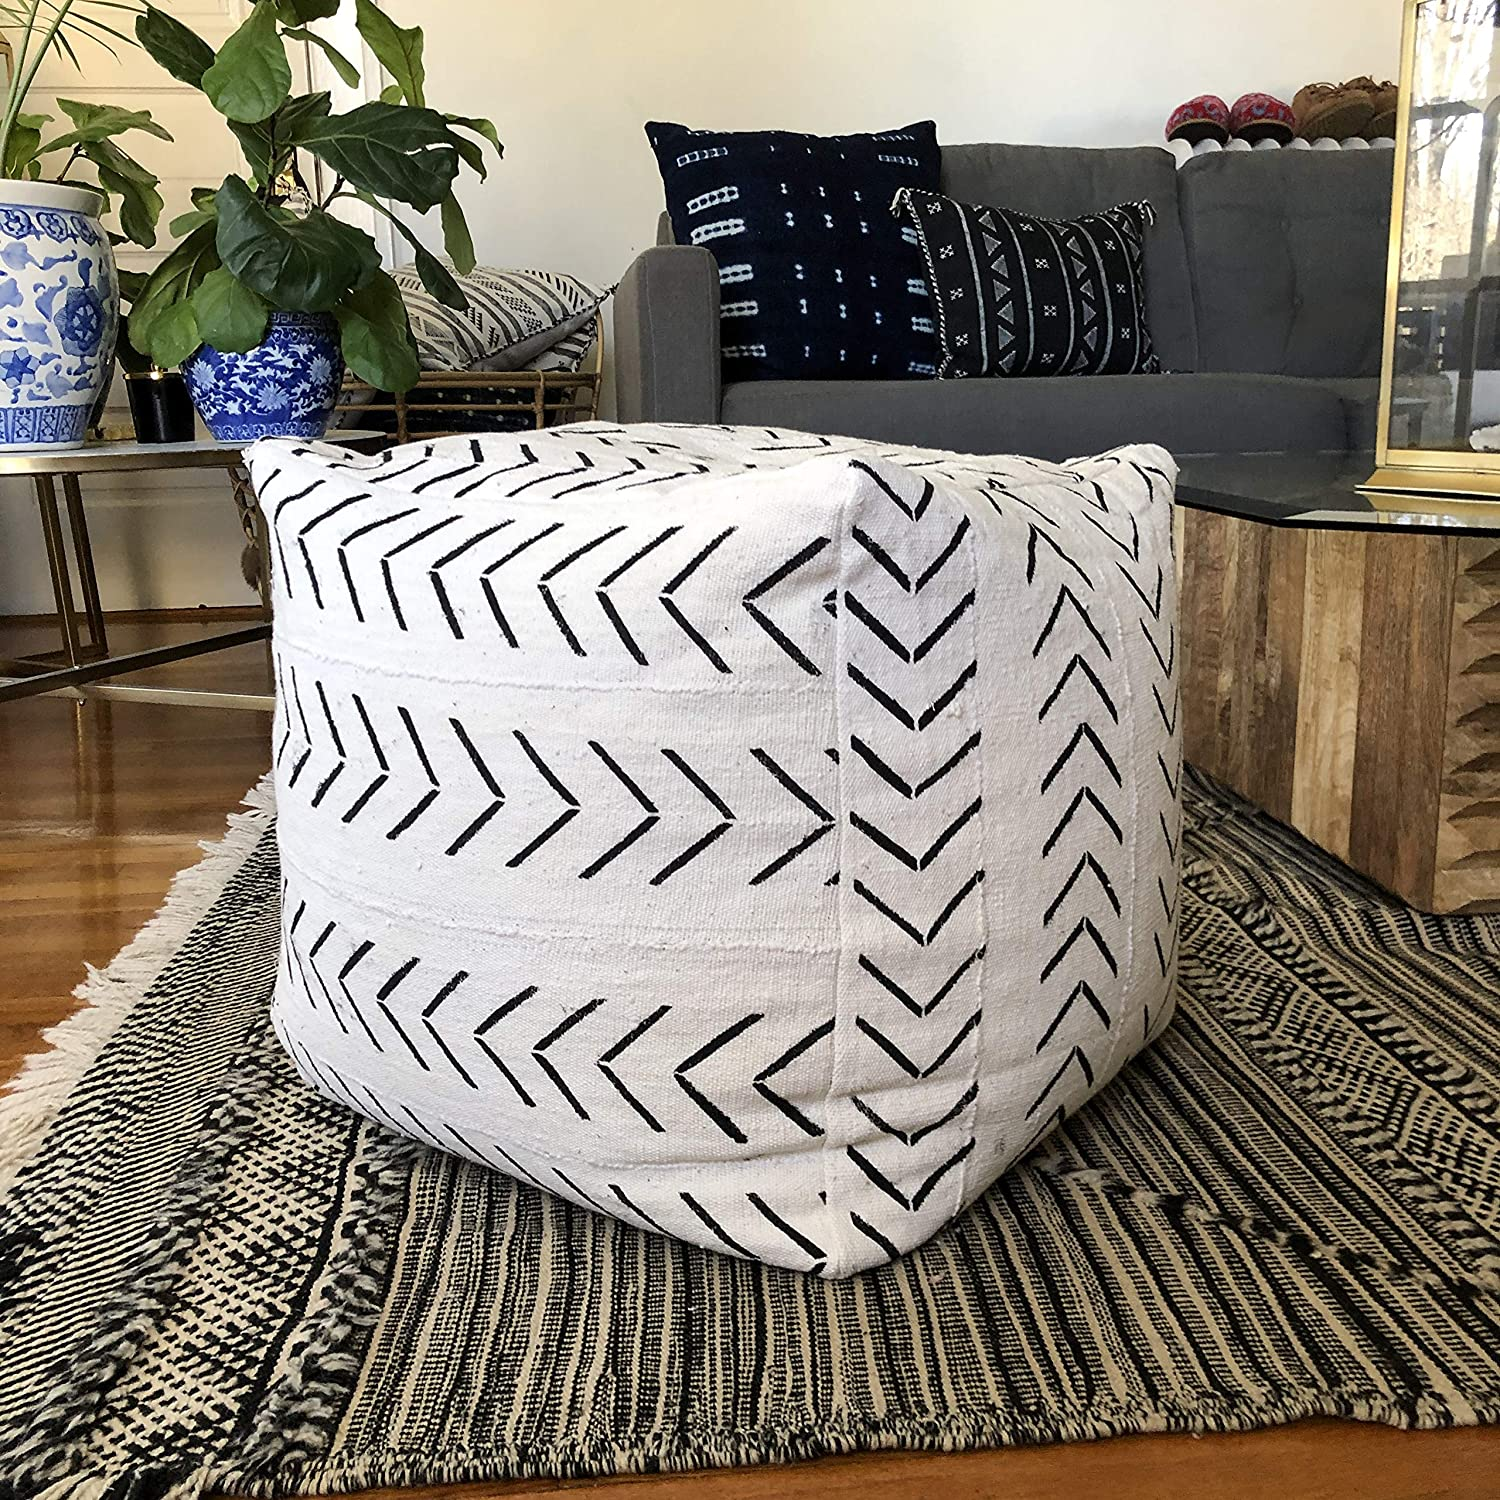 Incredible Amazon Com Black And White Arrow Print Mudcloth Square Pouf Alphanode Cool Chair Designs And Ideas Alphanodeonline